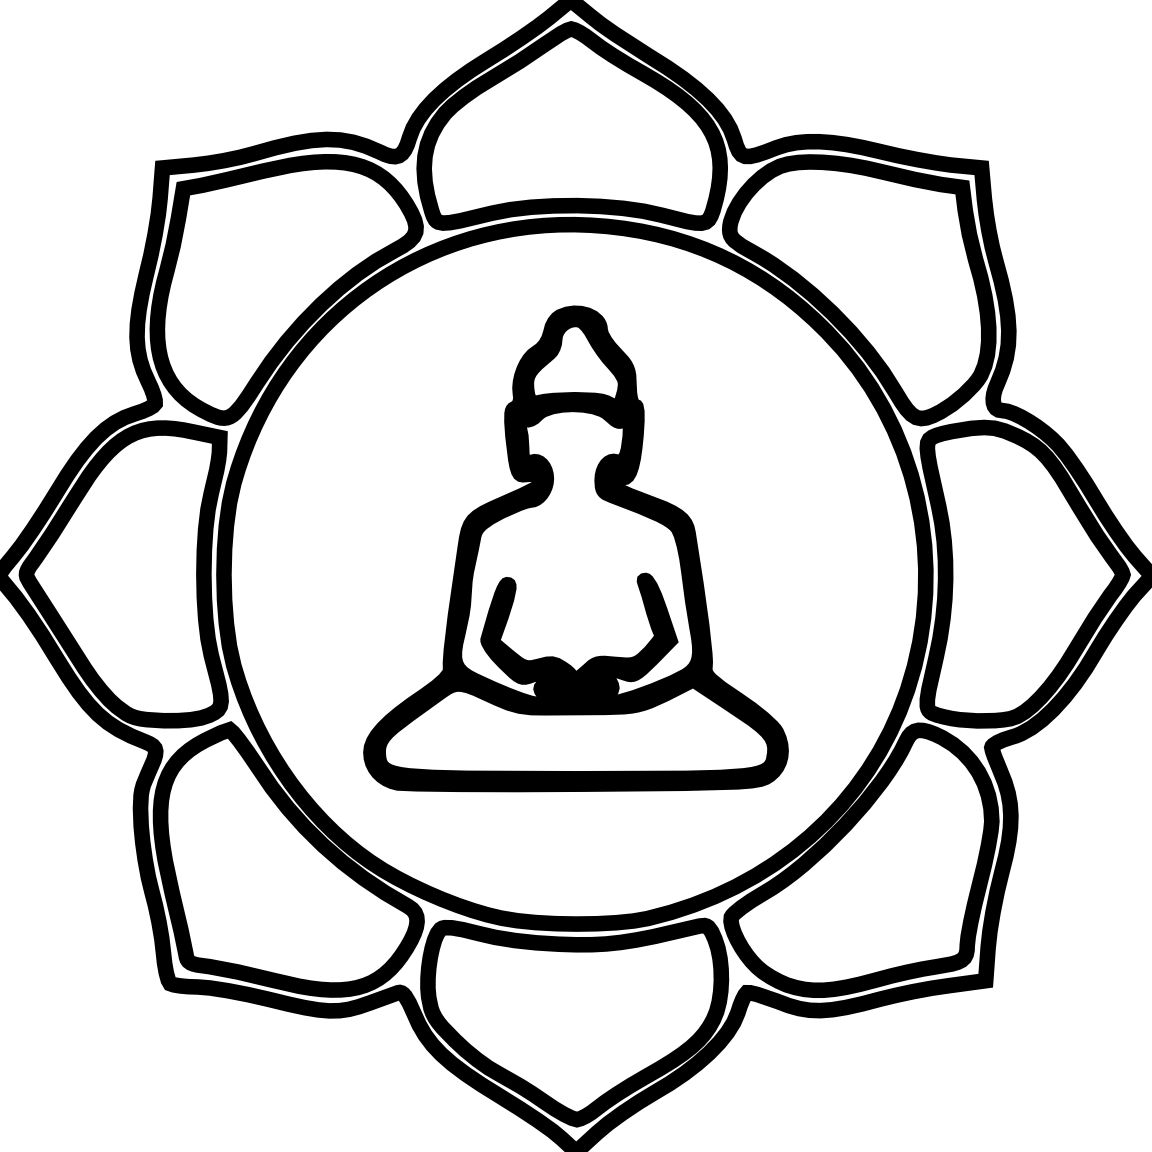 Buddhist drawing simple. Buddha flower color black